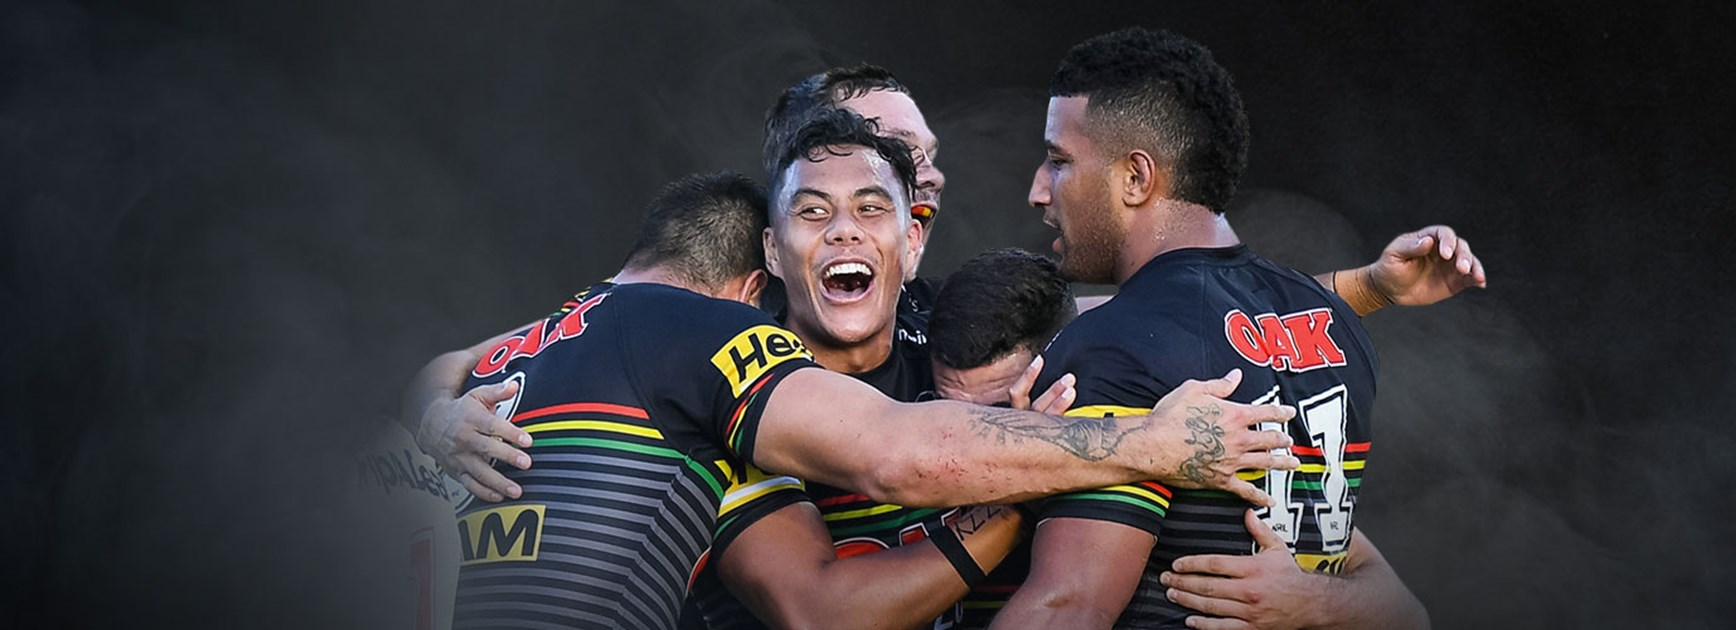 Panthers partners launch exclusive members offers